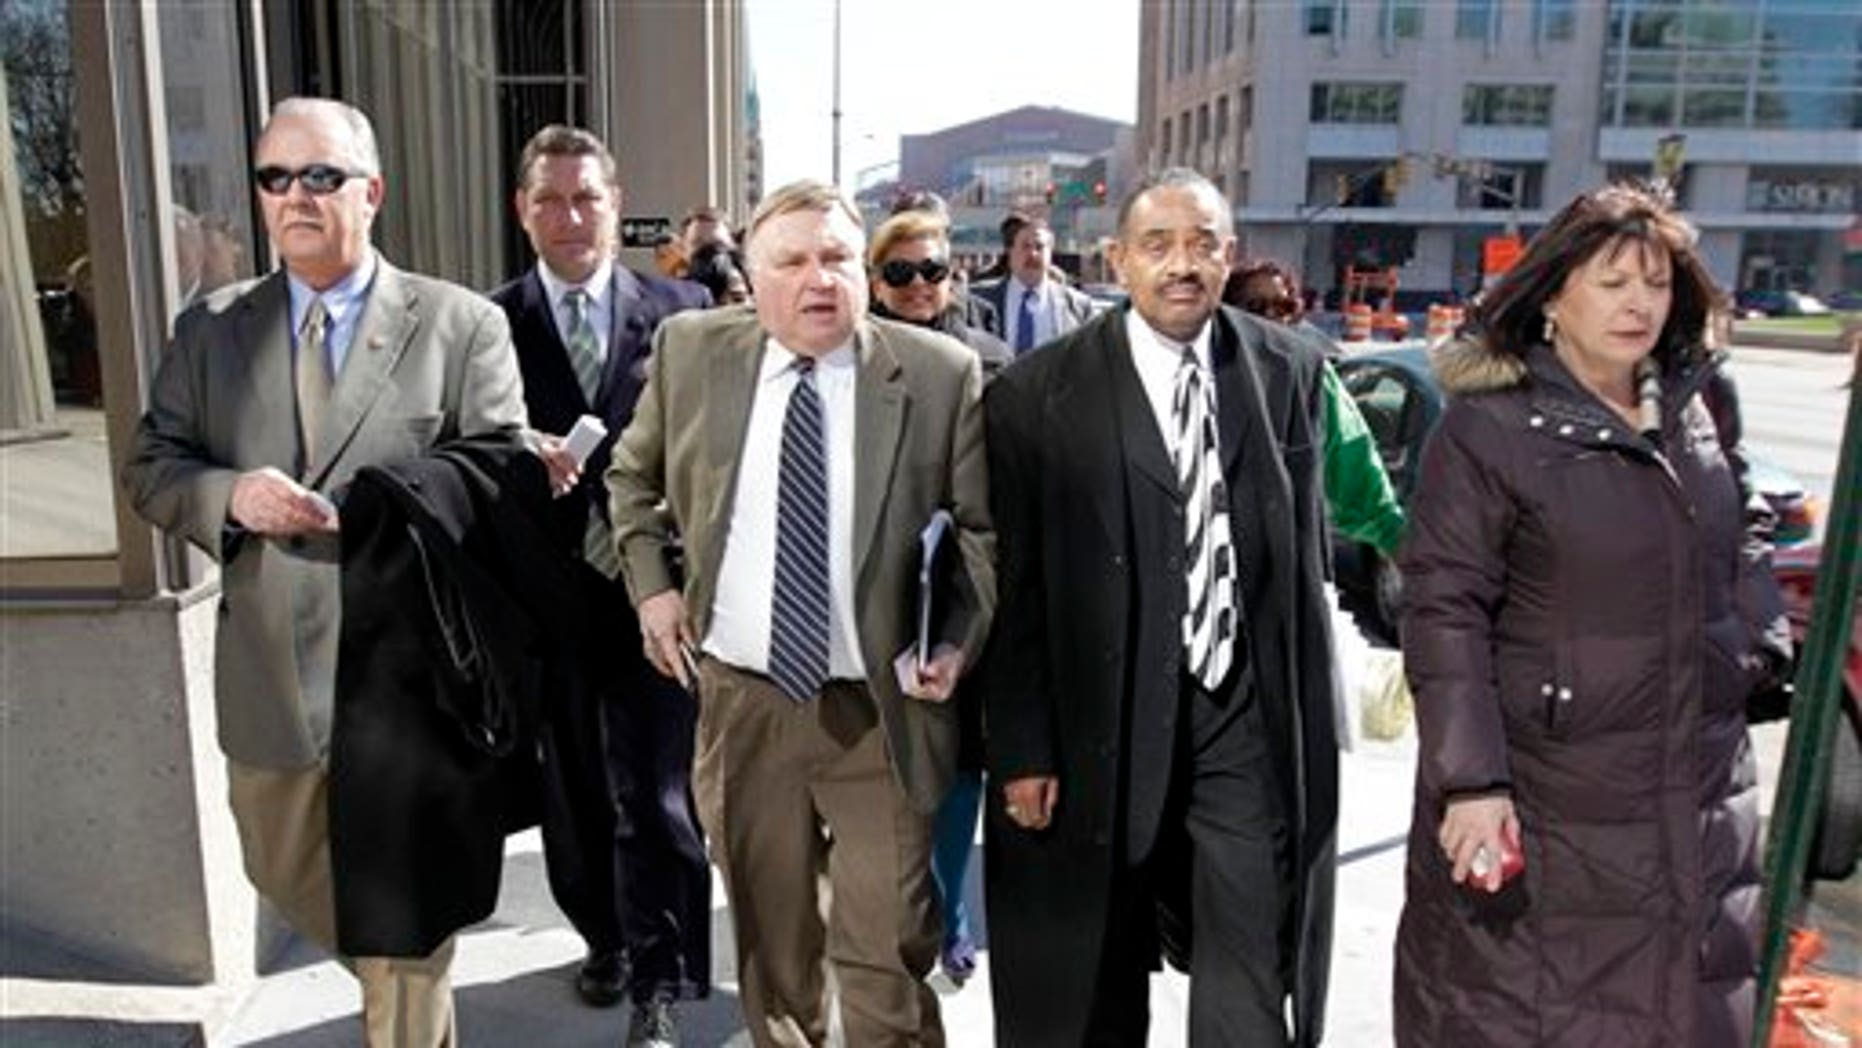 March 28: Minority Leader Pat Bauer walks with fellow Democrats while returning to the Statehouse in Indianapolis.